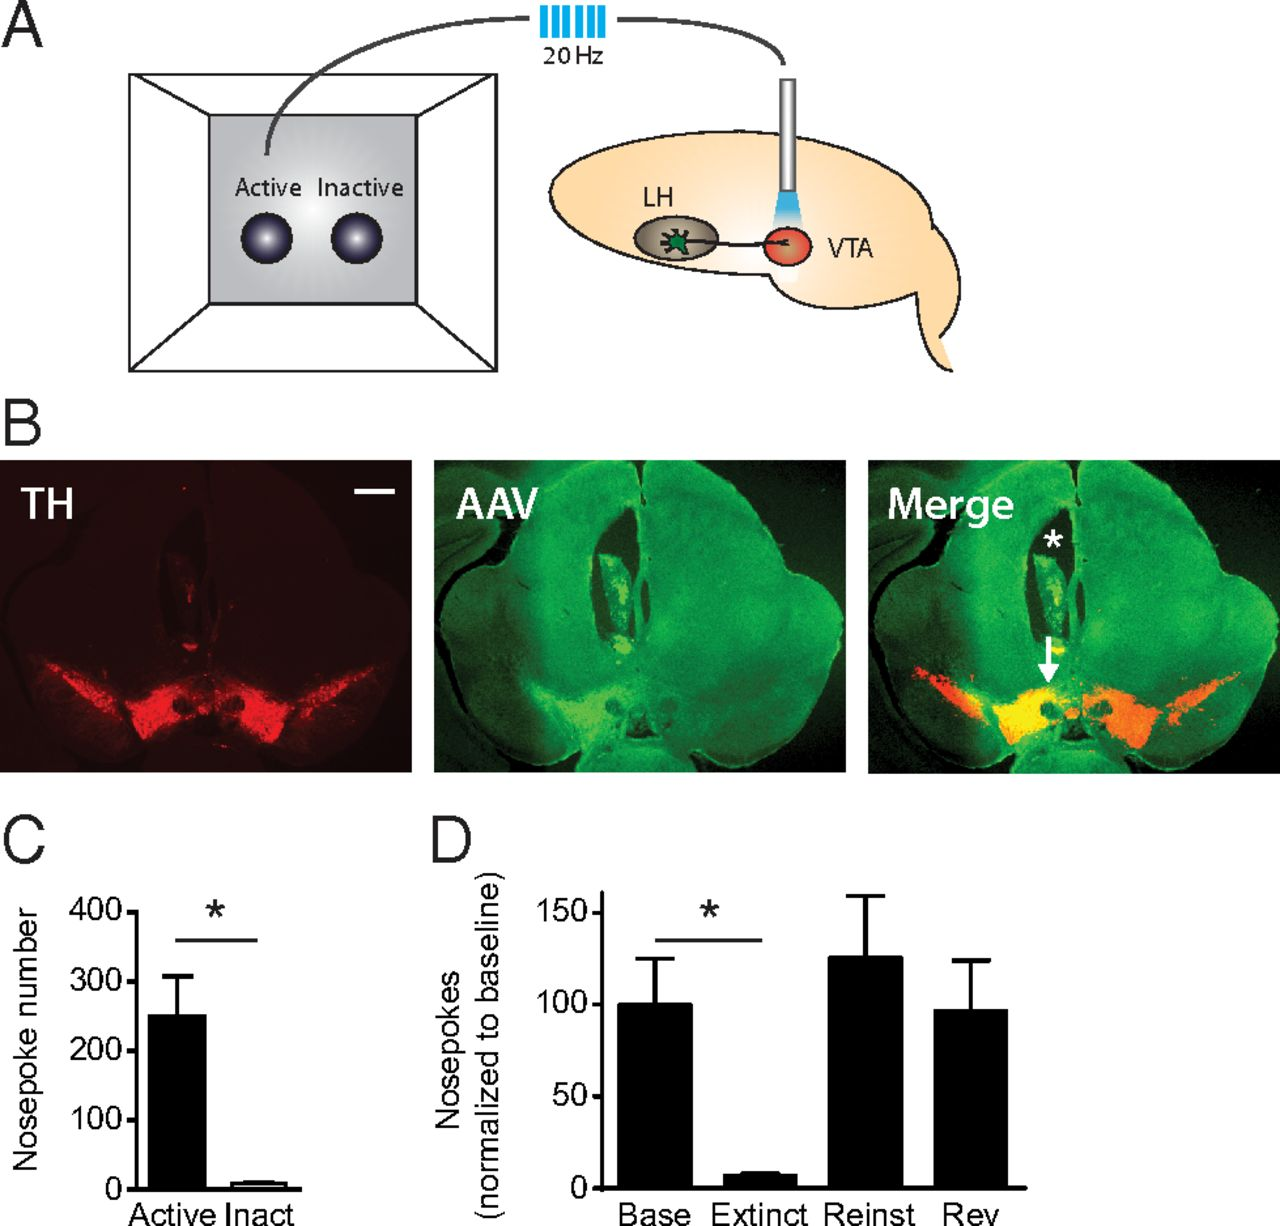 Hypothalamic Neurotensin Projections Promote Reward By Enhancing Circuit Board From A Defunct Optical Computer Mouse Picture Of The Download Figure